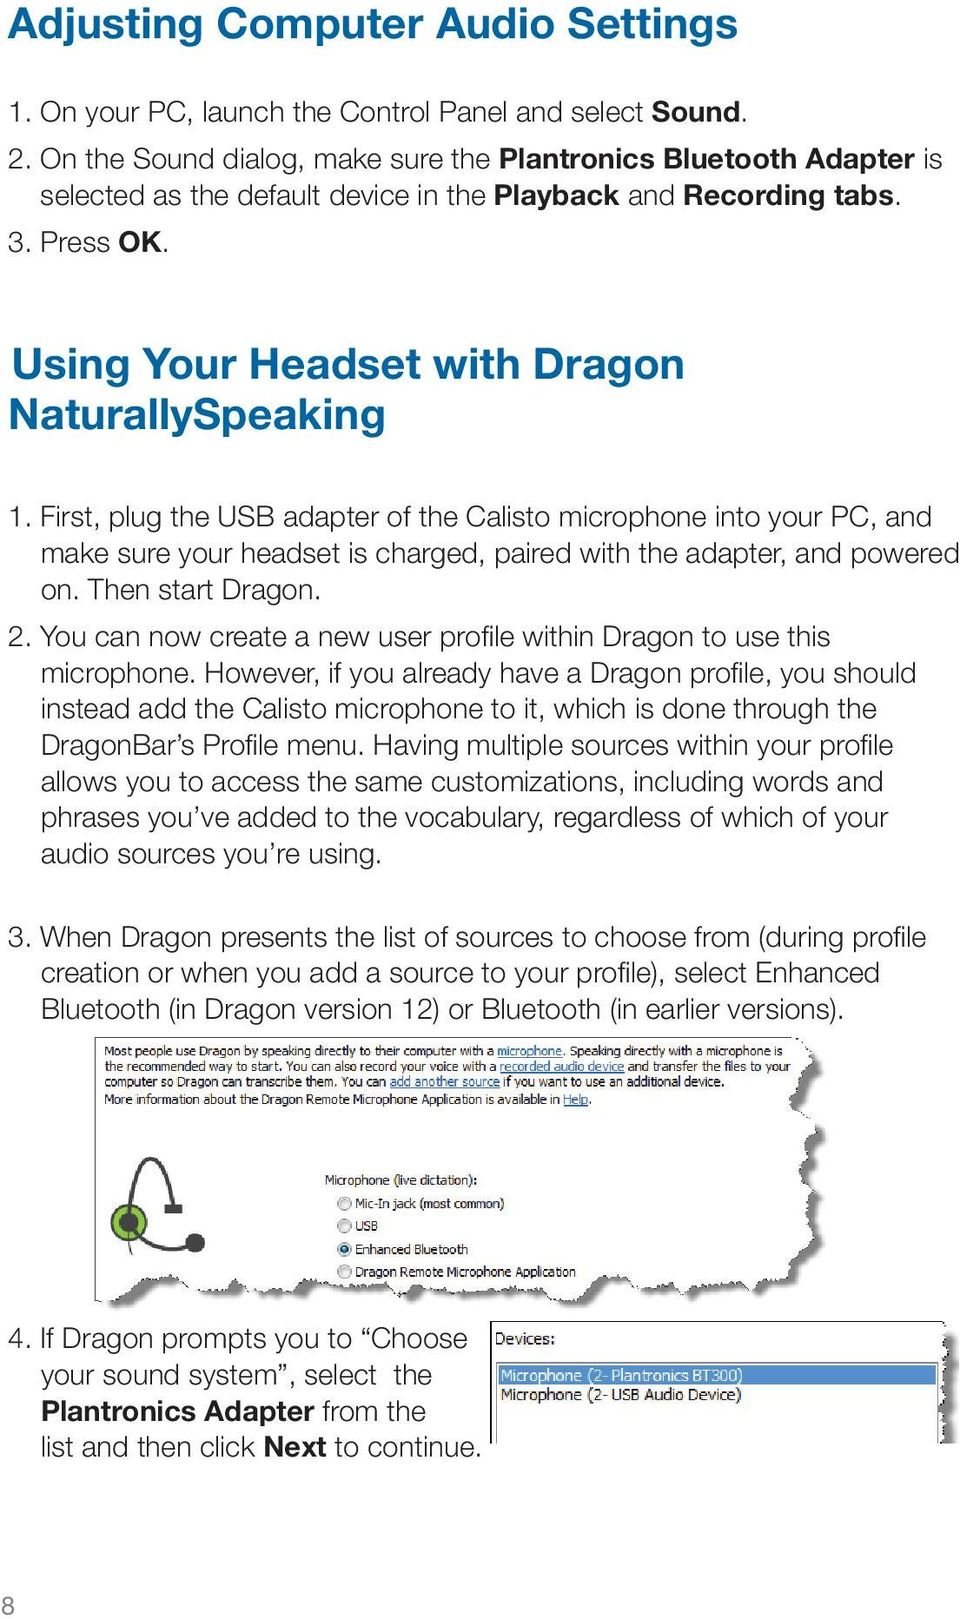 First, plug the USB adapter of the Calisto microphone into your PC, and make sure your headset is charged, paired with the adapter, and powered on. Then start Dragon. 2.